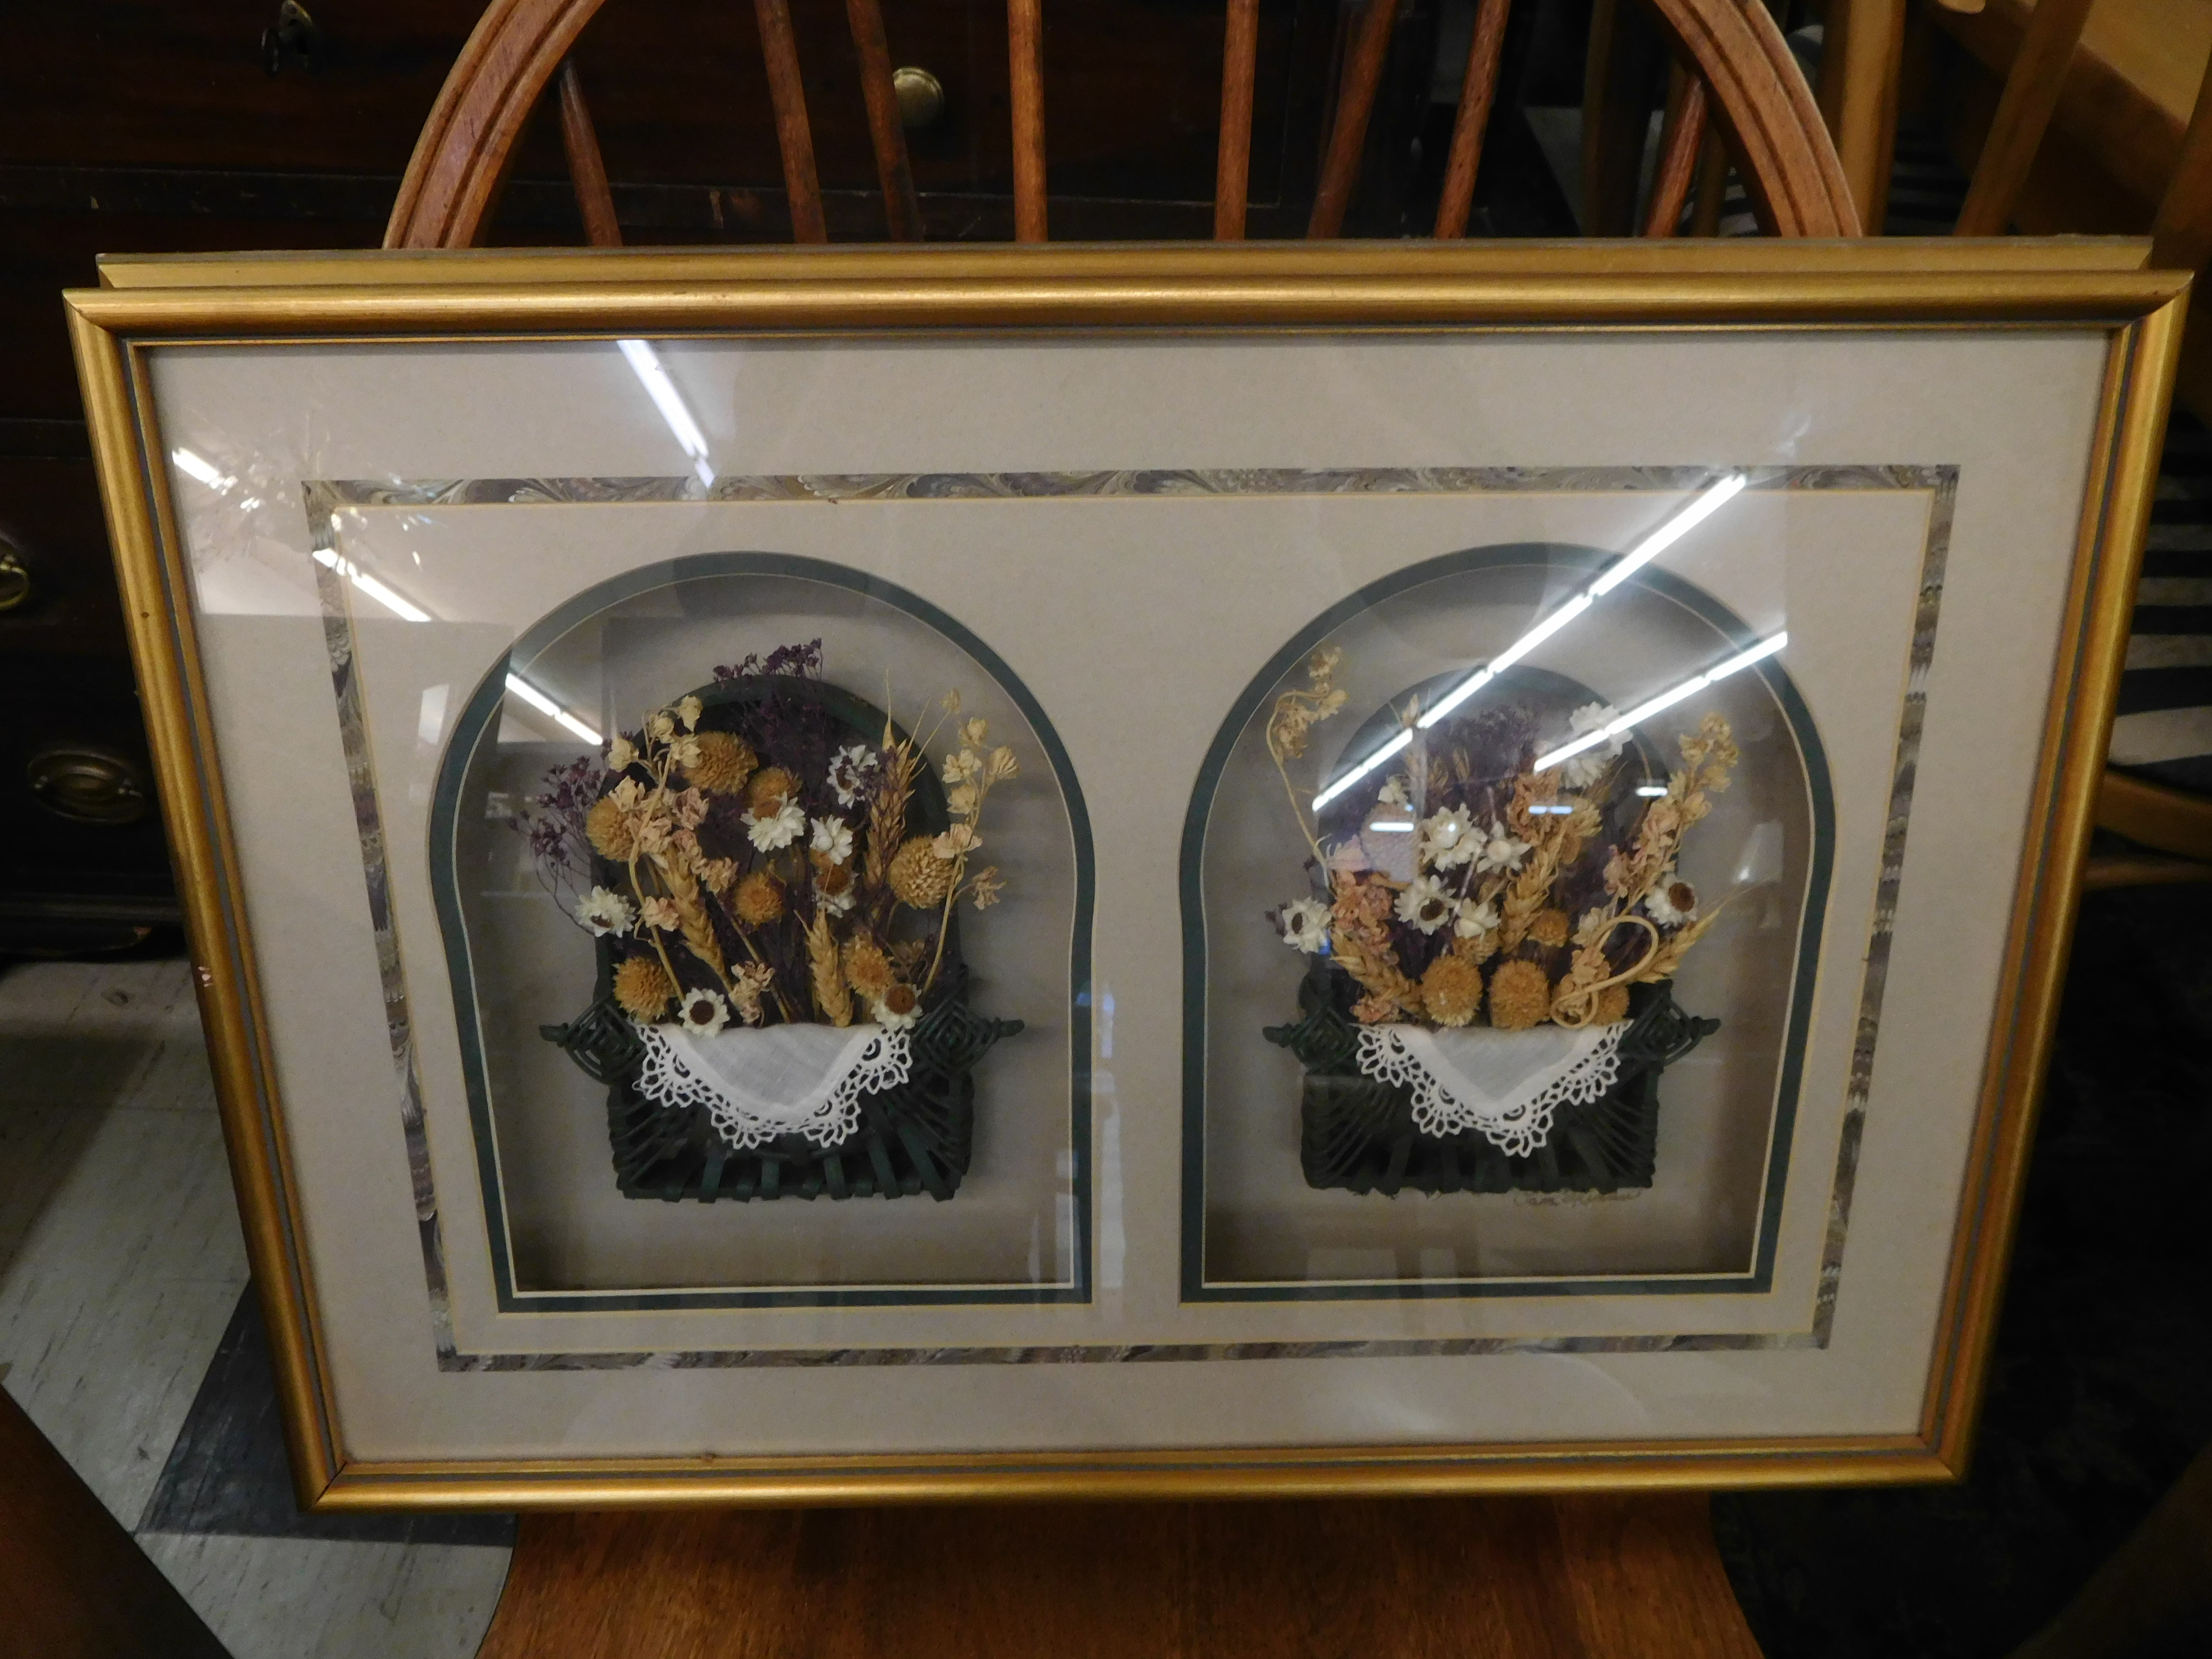 Framed Shadow Box Displaying Dried Flowers, Wicker and Lace